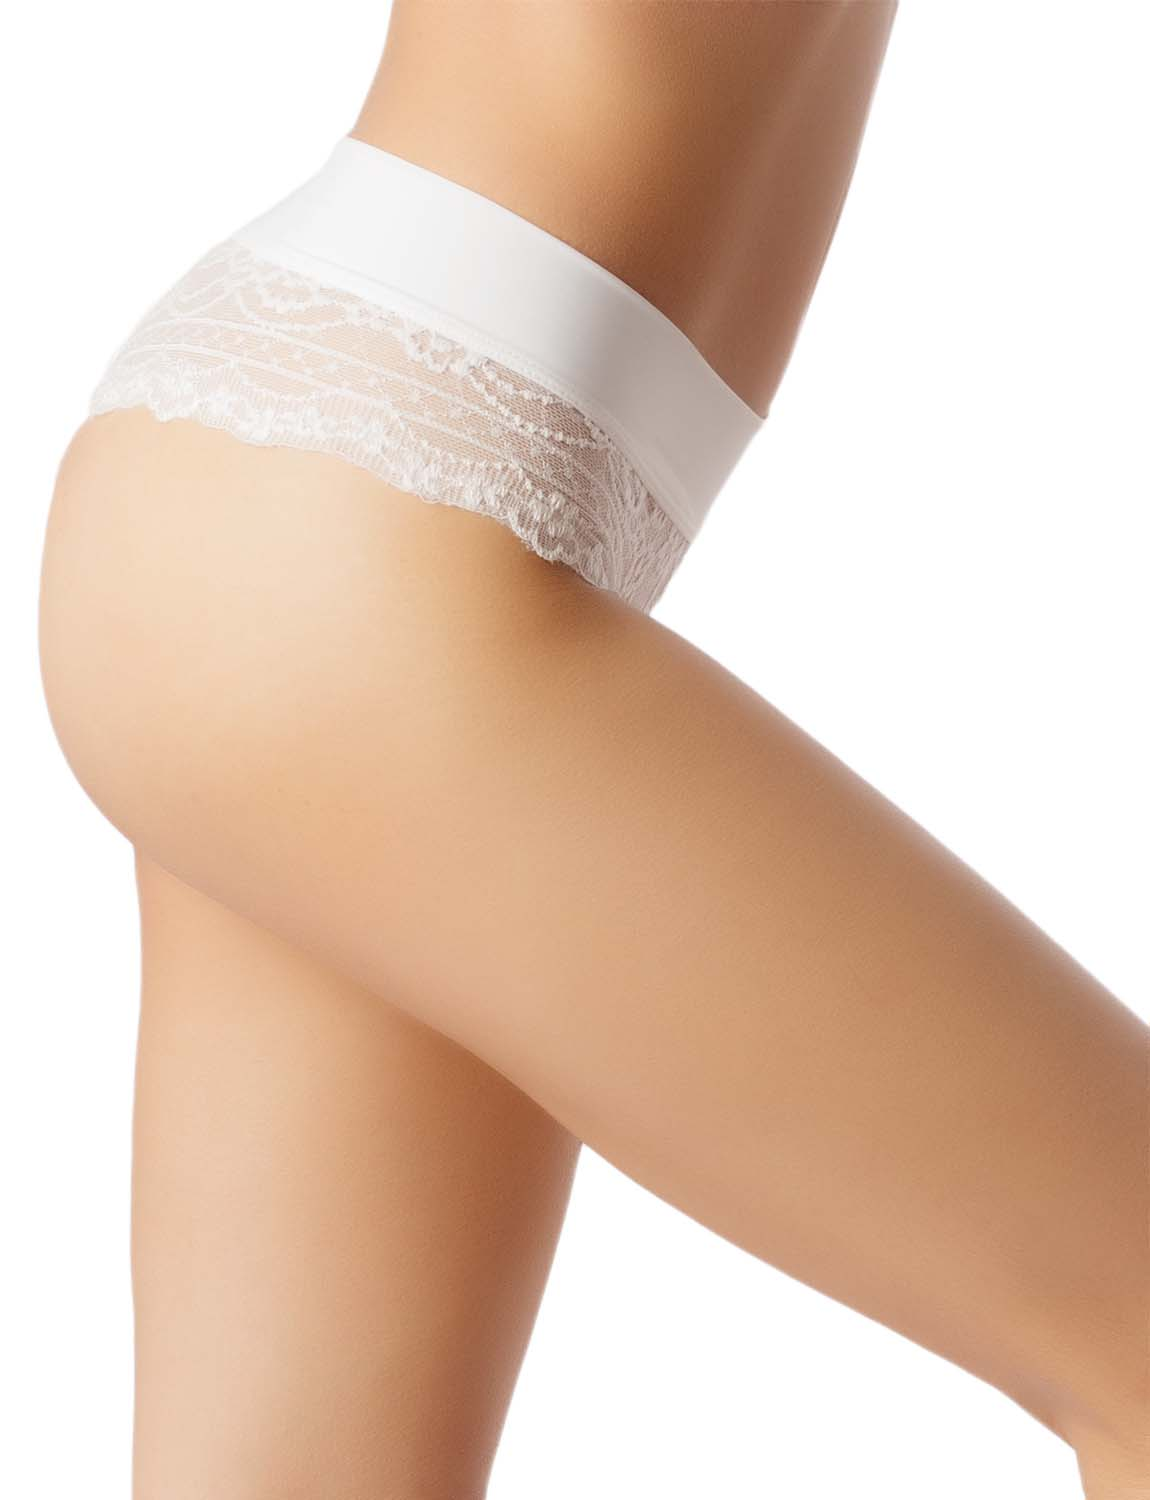 Women's Wide Band Lace Mesh See-Through Breathable Low Rise Hipster Panty, Size: L, White